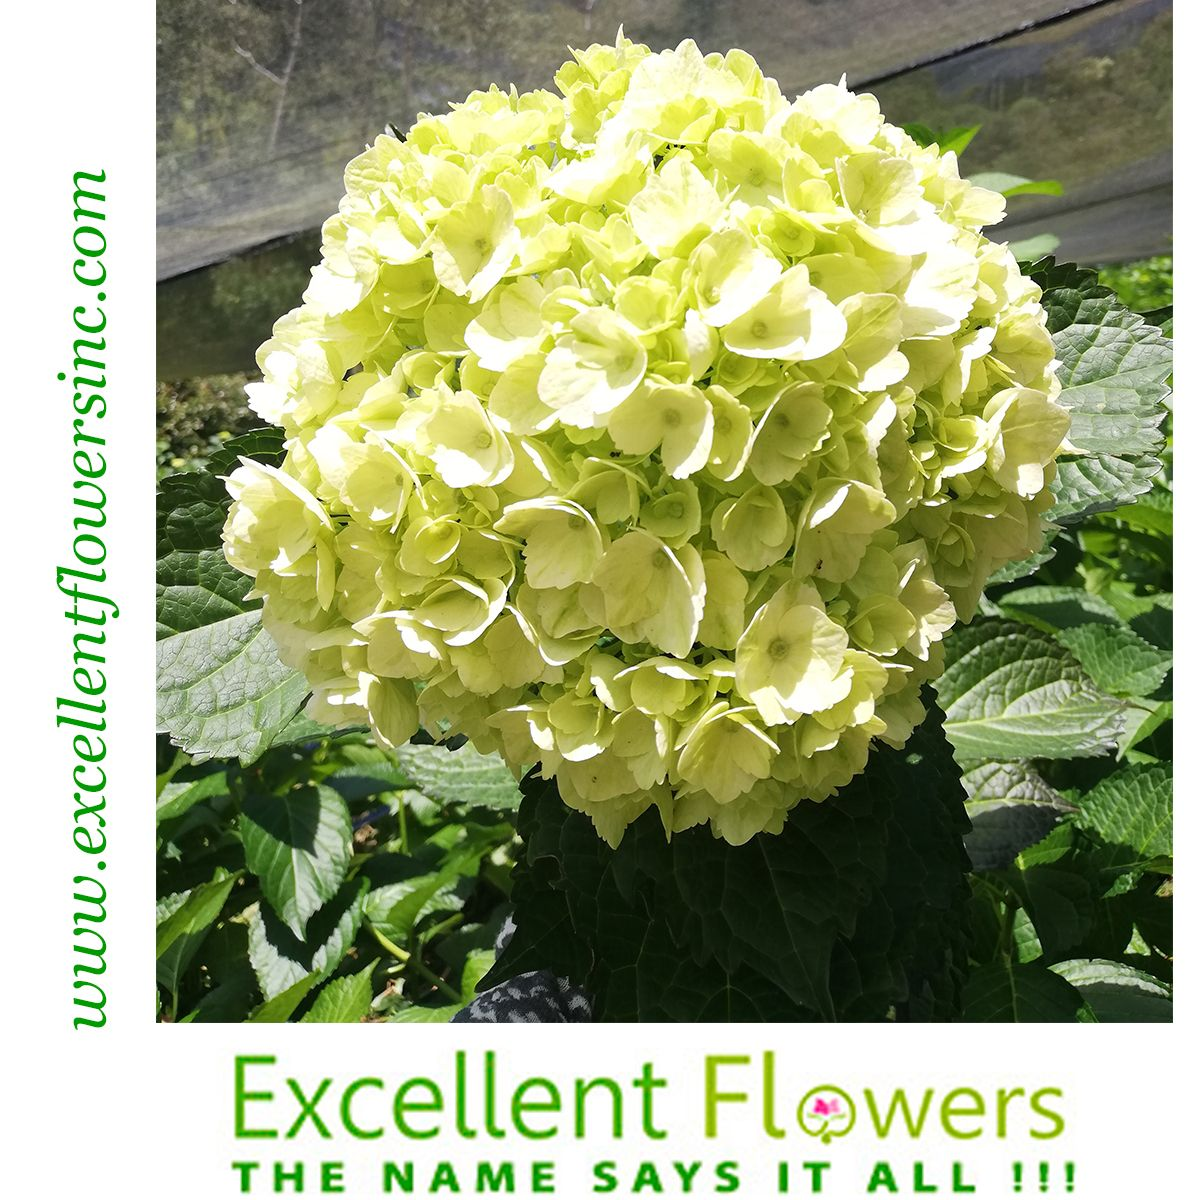 Lime Green Hydrangeas By Excellent Flowers Inc Wonderful Hydrangeas Imported And Distributed For Our Beloved Custo Flowers Direct Green Hydrangea Flowers